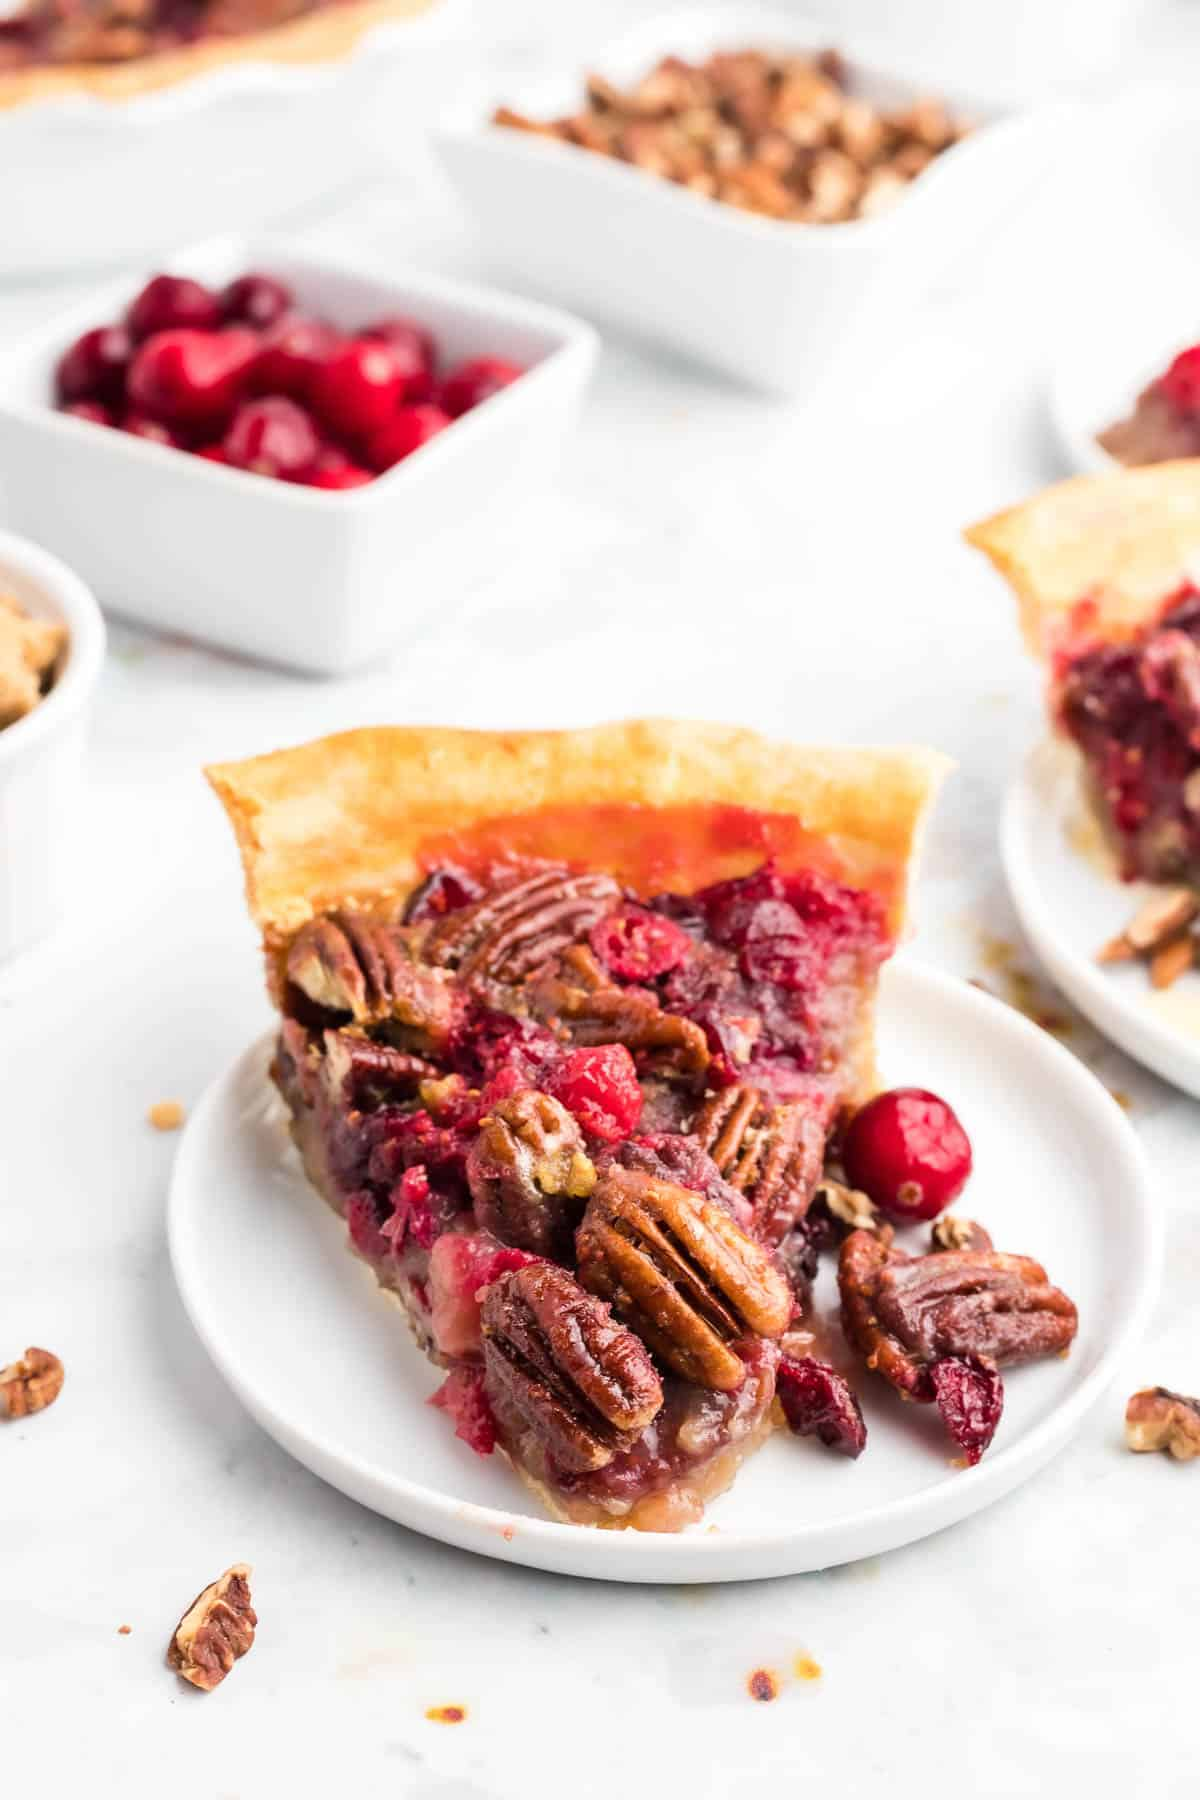 Pie slice on a white plate with cranberries and pecans scattered around.